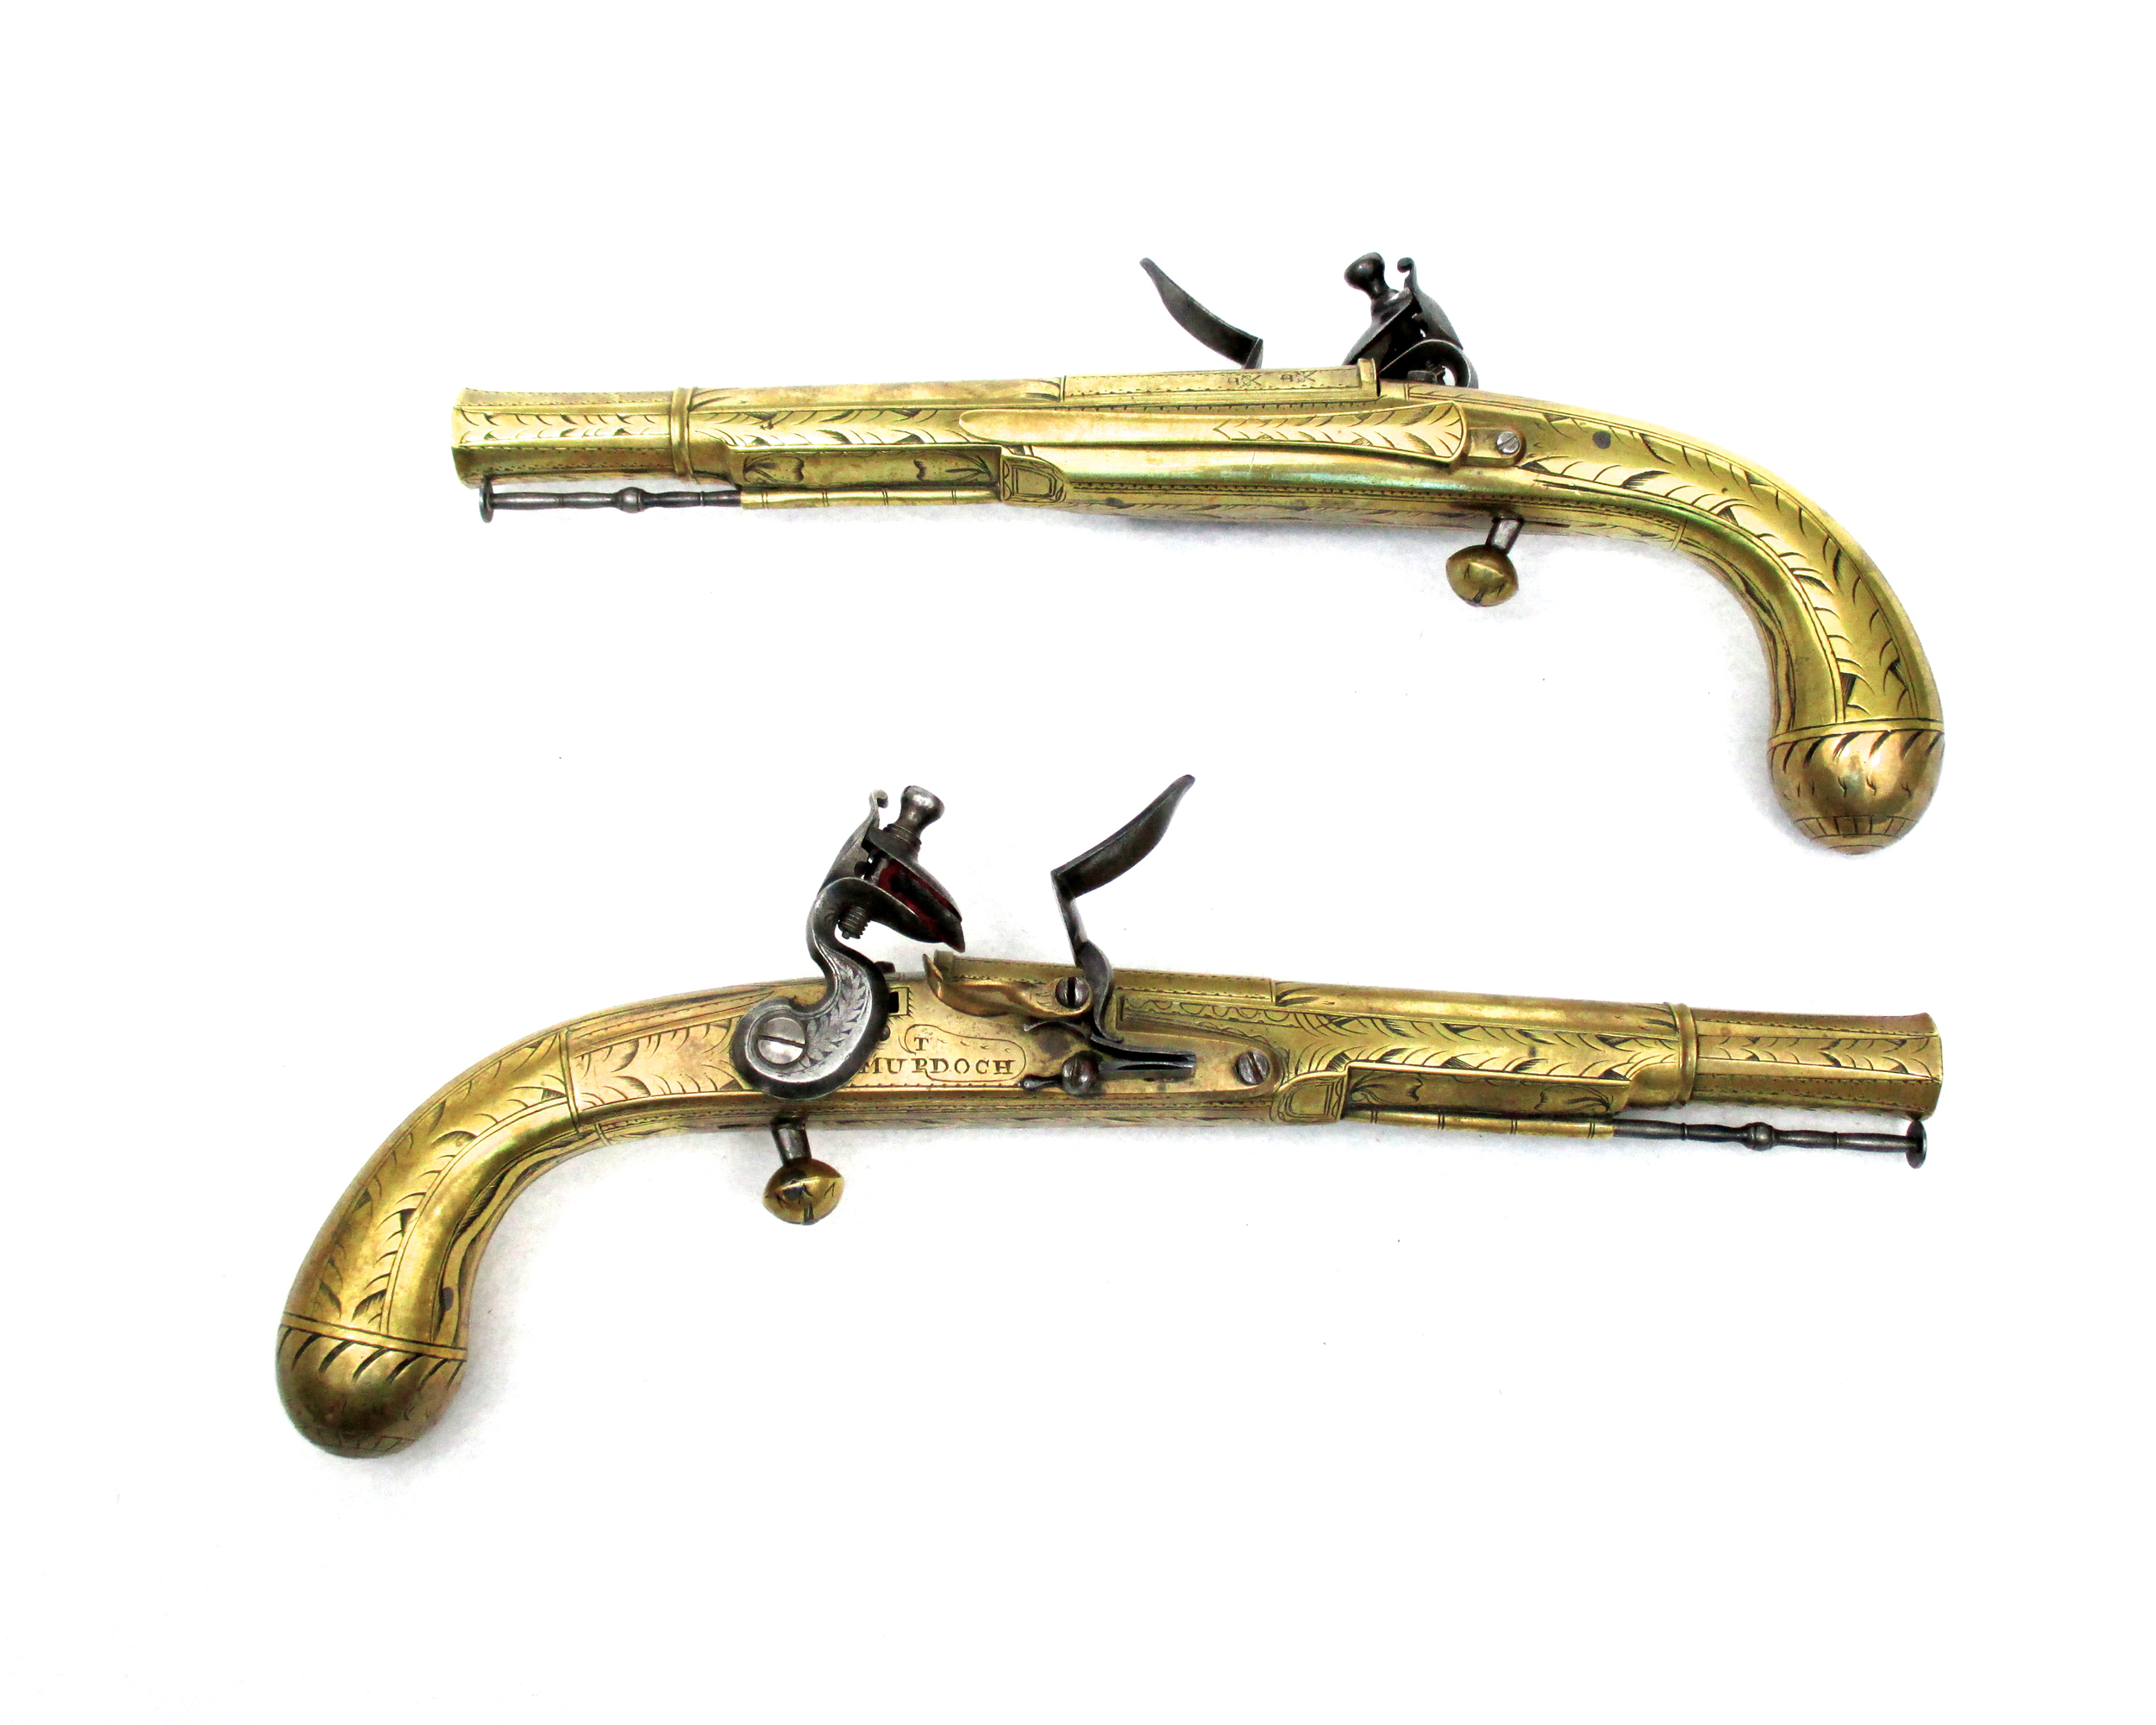 Pair-os-Scottish-Flintlock-Pistols-3rd-quarter-18th-century-friedland-arms-pair_brass-pistols-Murdoch-Thomas-6.jpg